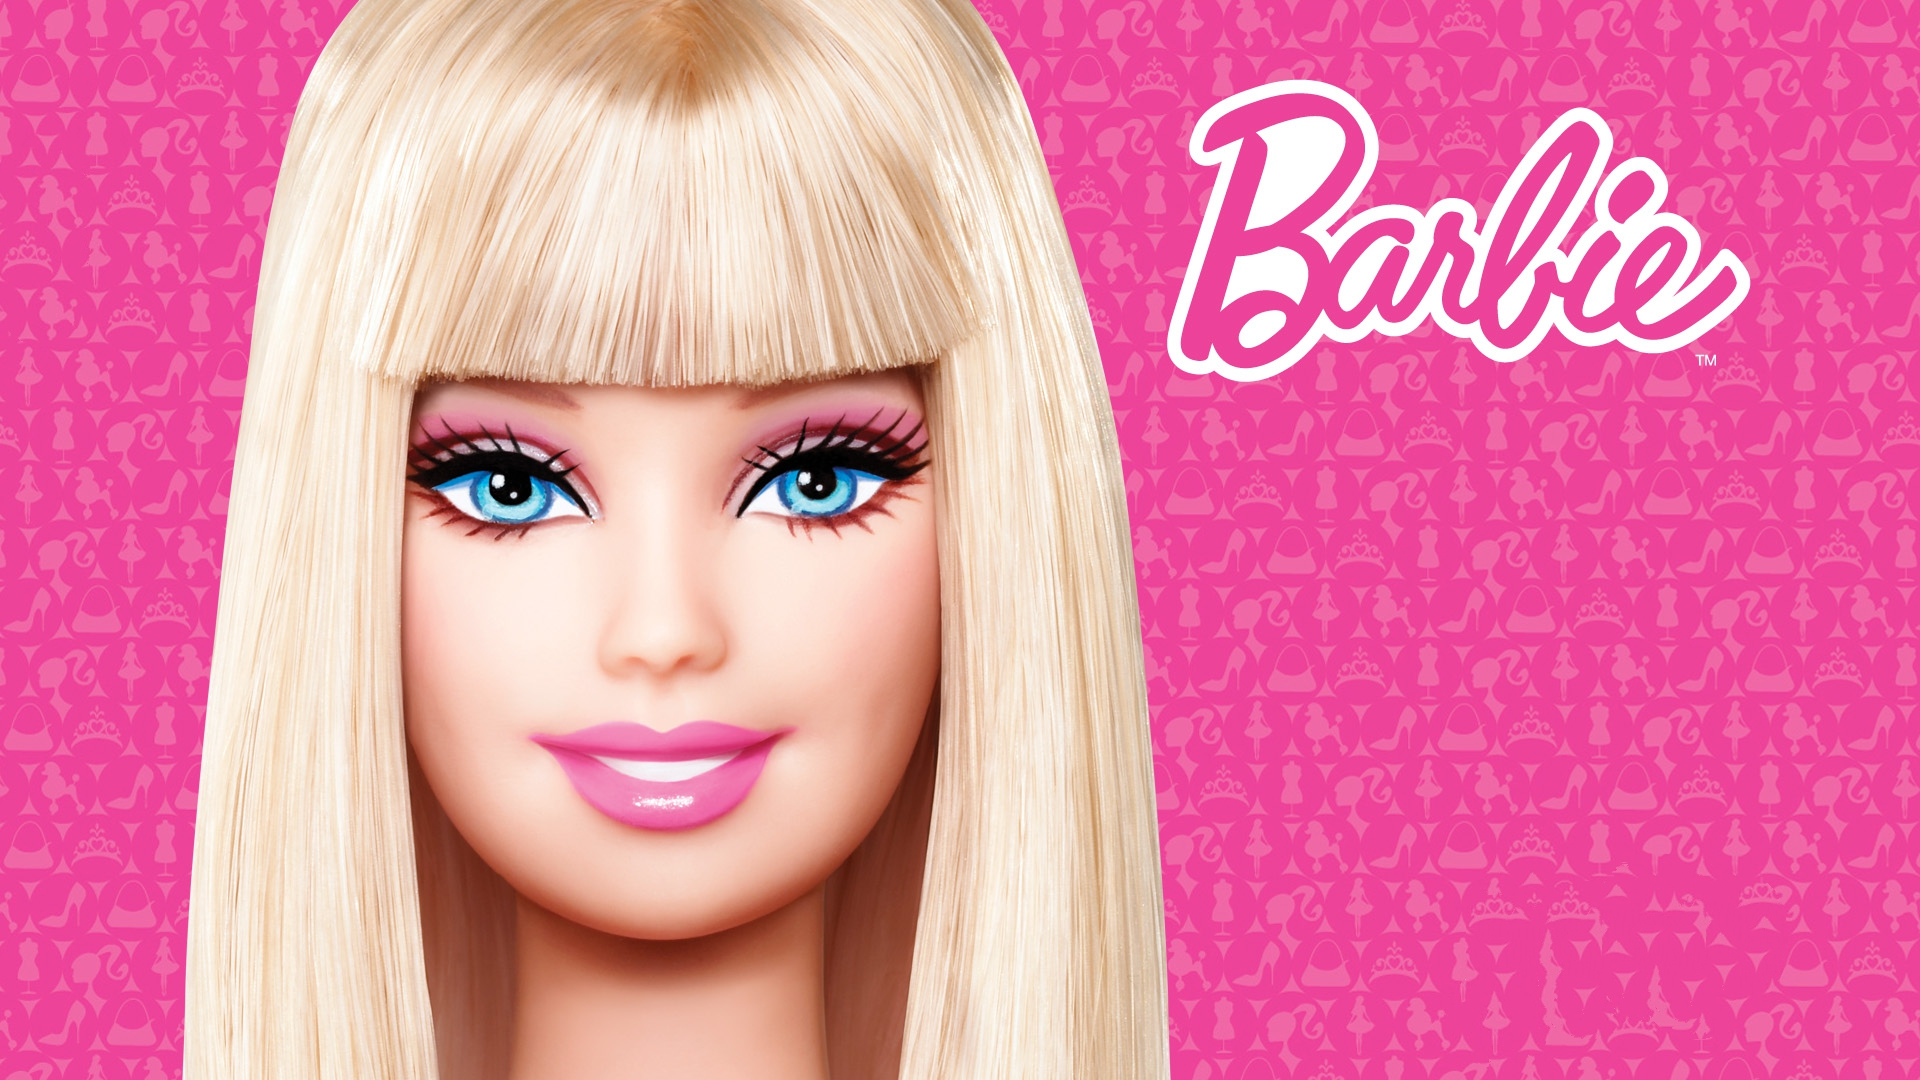 barbie-in-psychology-of-young-girls-teen-naked-boy-girl-pictures